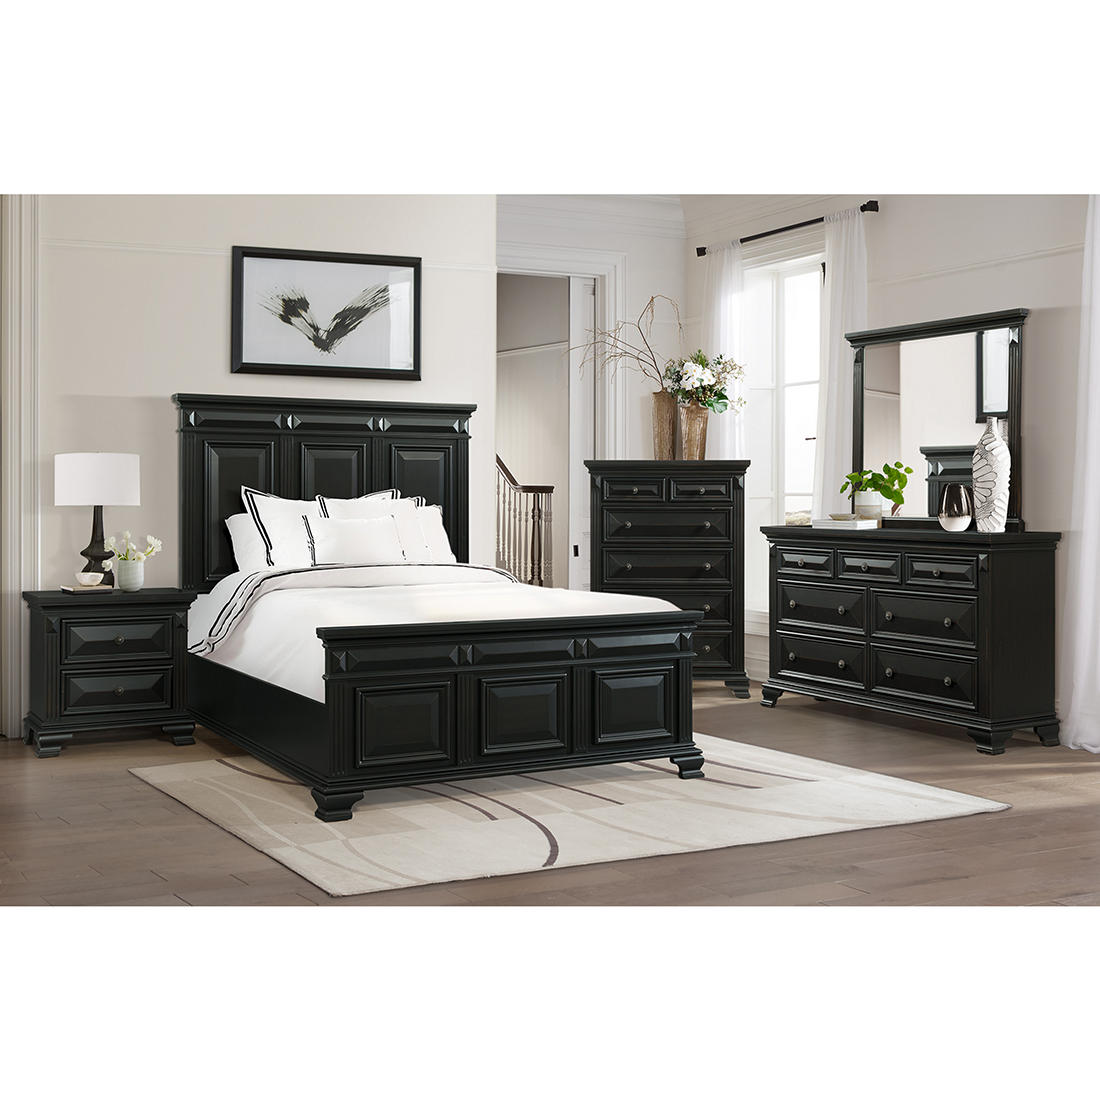 Windsor 5 Pc Queen Size Panel Bedroom